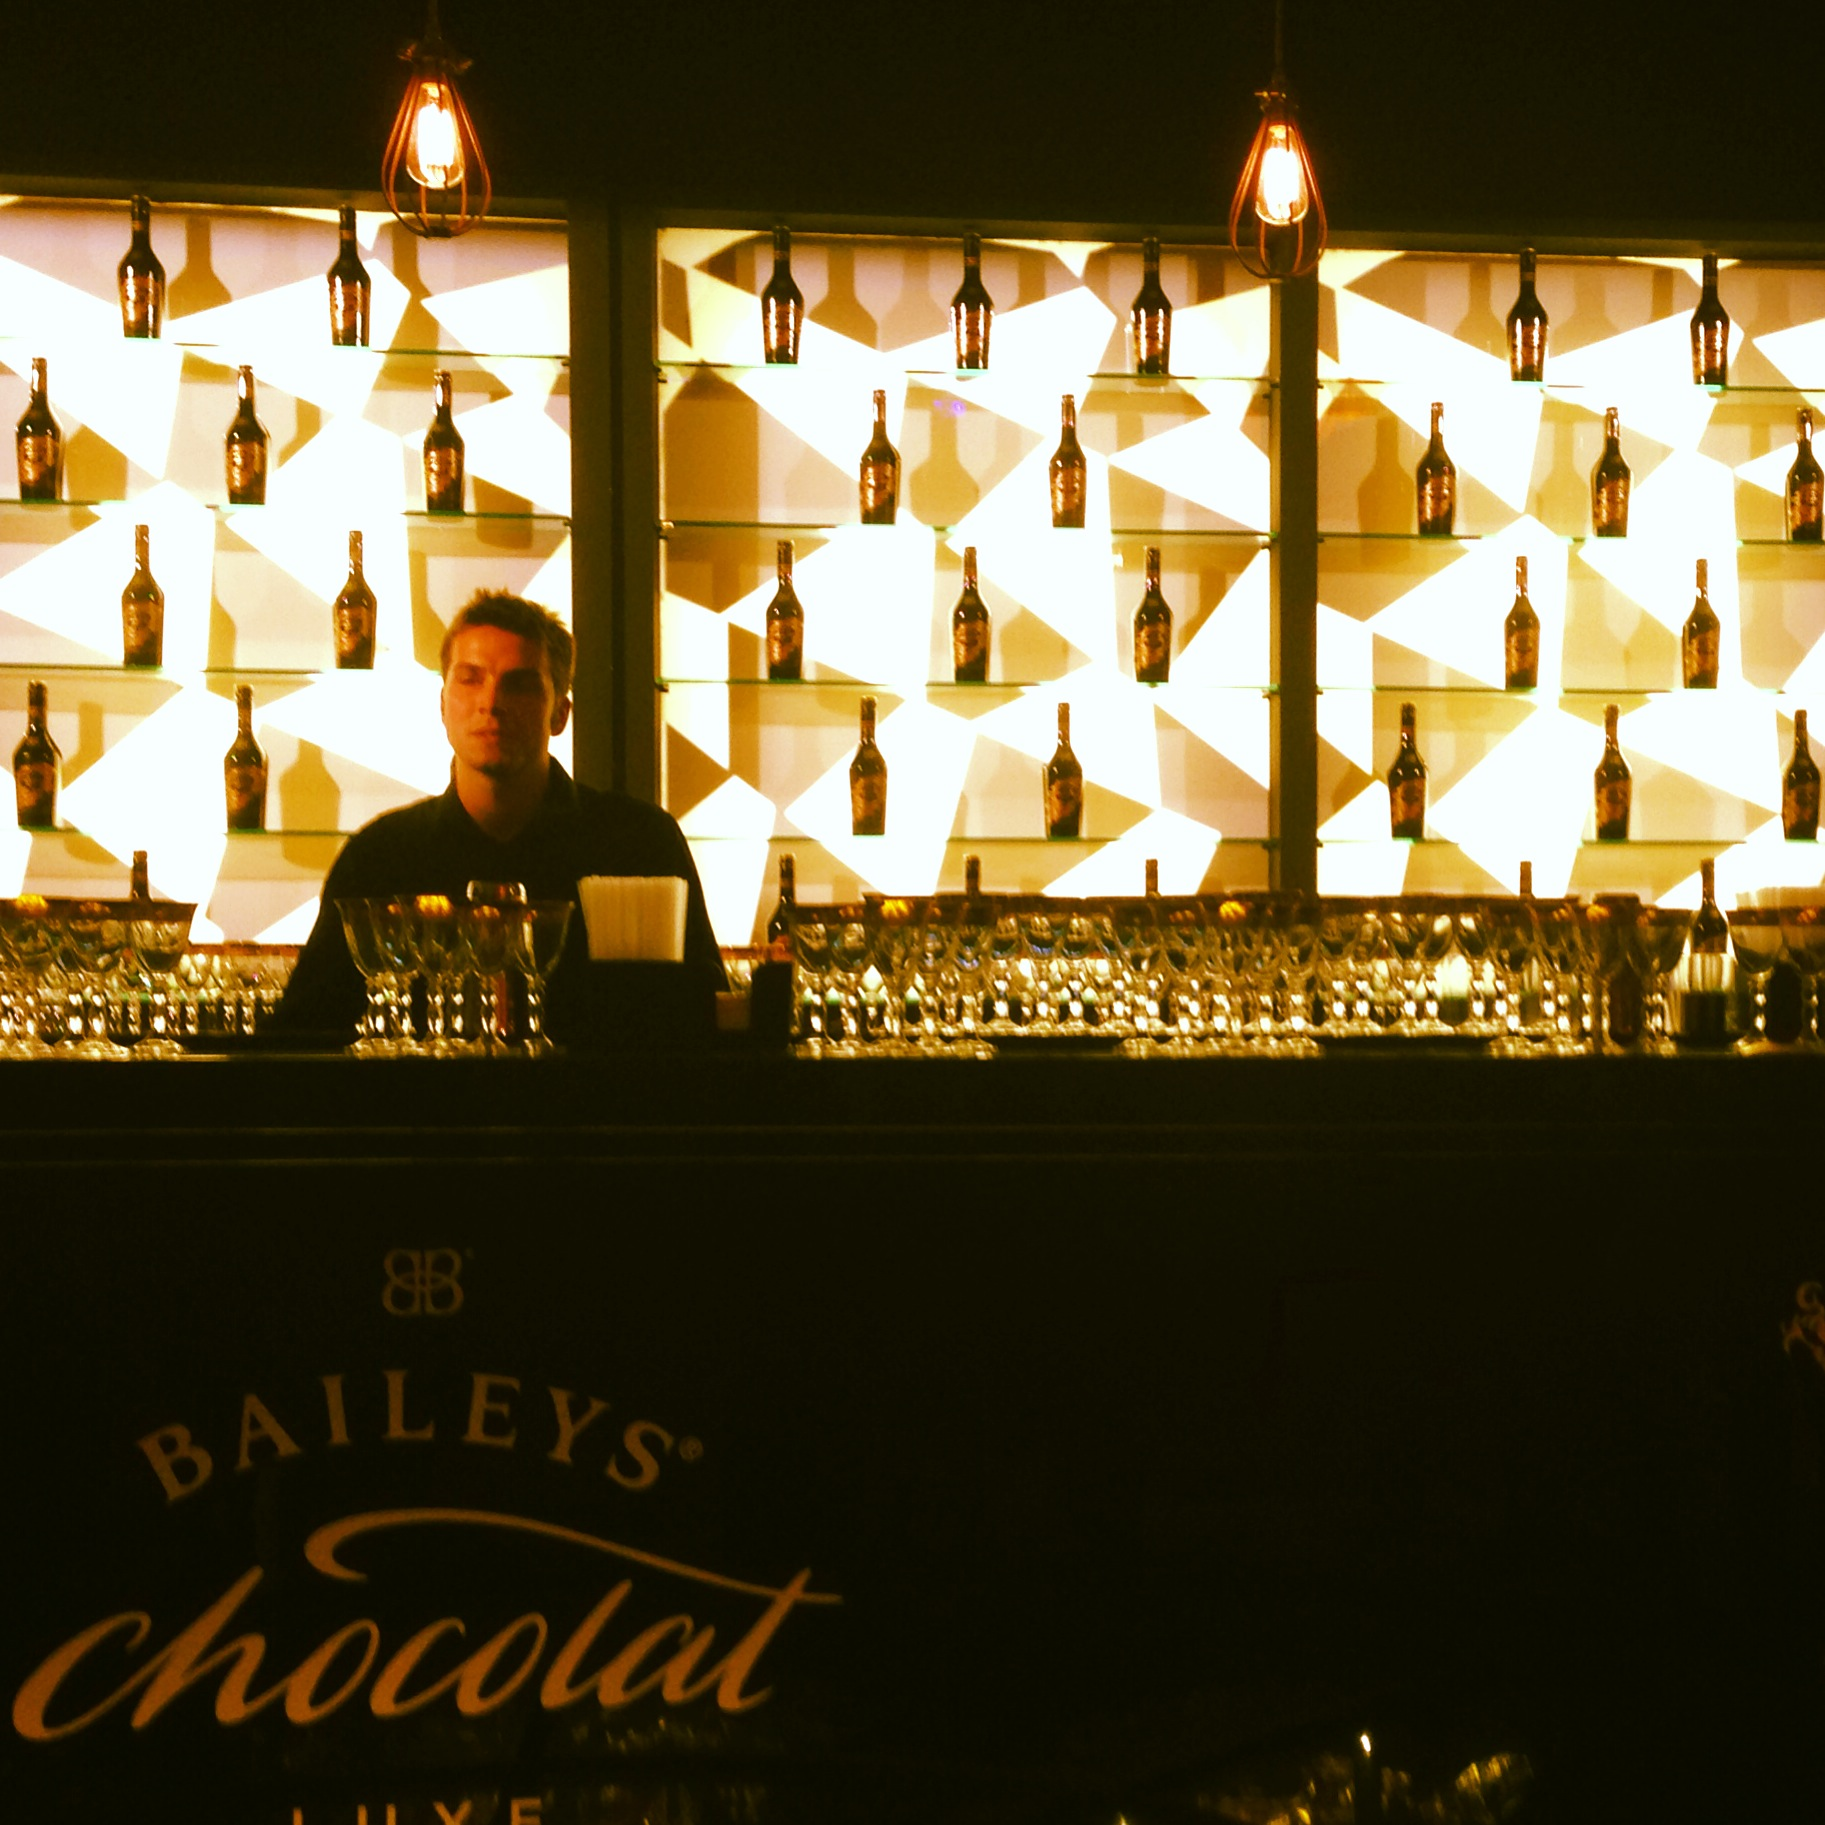 Bailey's Bar